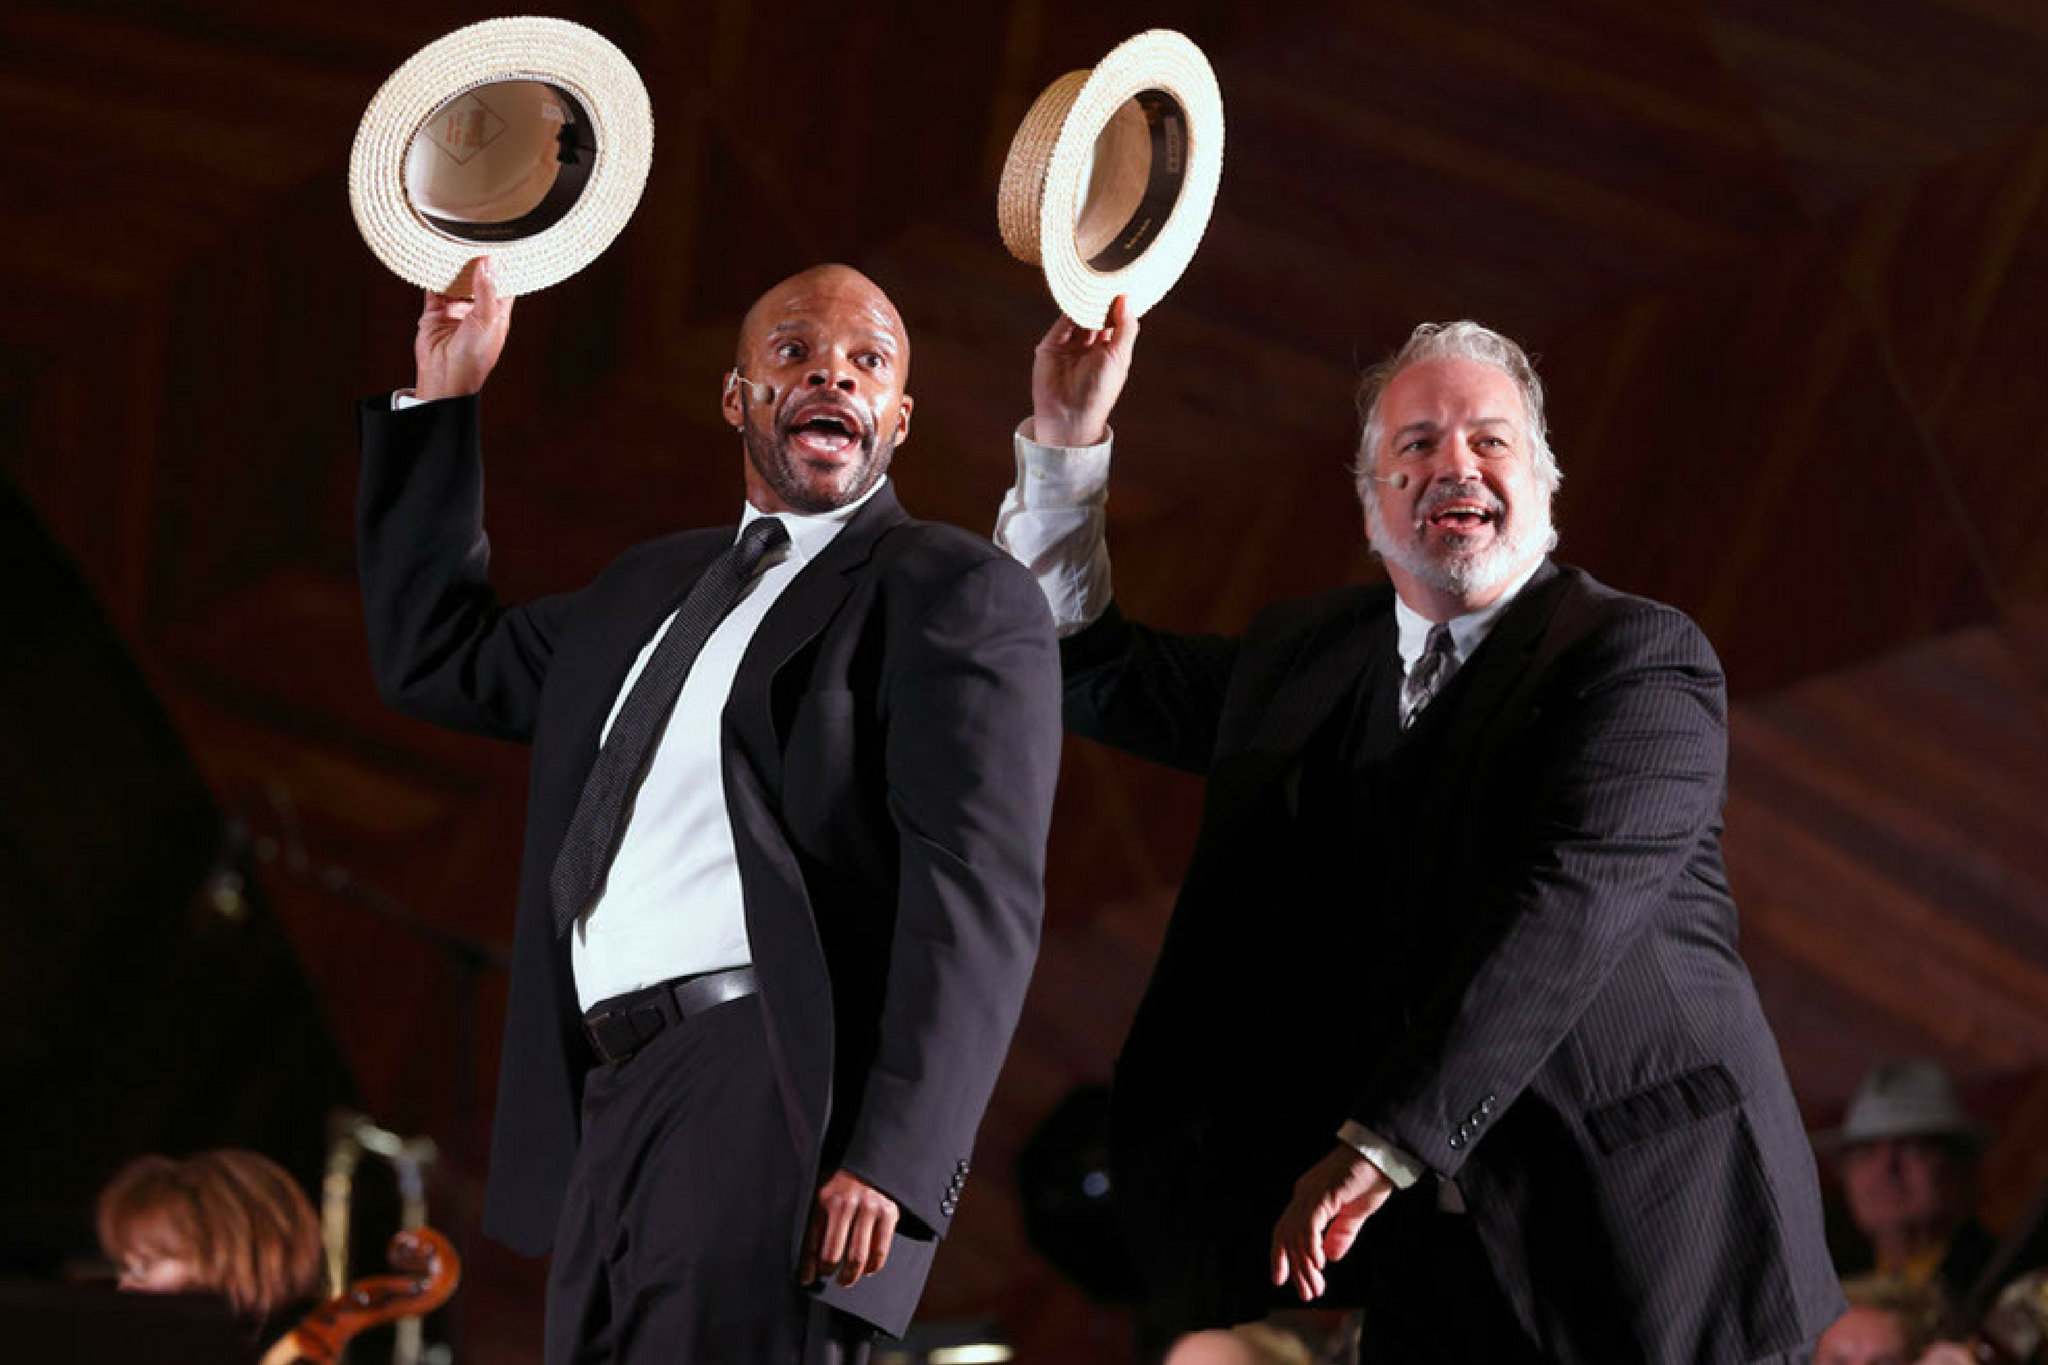 Brian Robinson (Gangster No. 2) and Fred Sullivan, Jr. (Gangster No. 1) in Kiss Me Kate, CSC and Landmarks Orchestra 2014. Photo by Michael Dwyer.